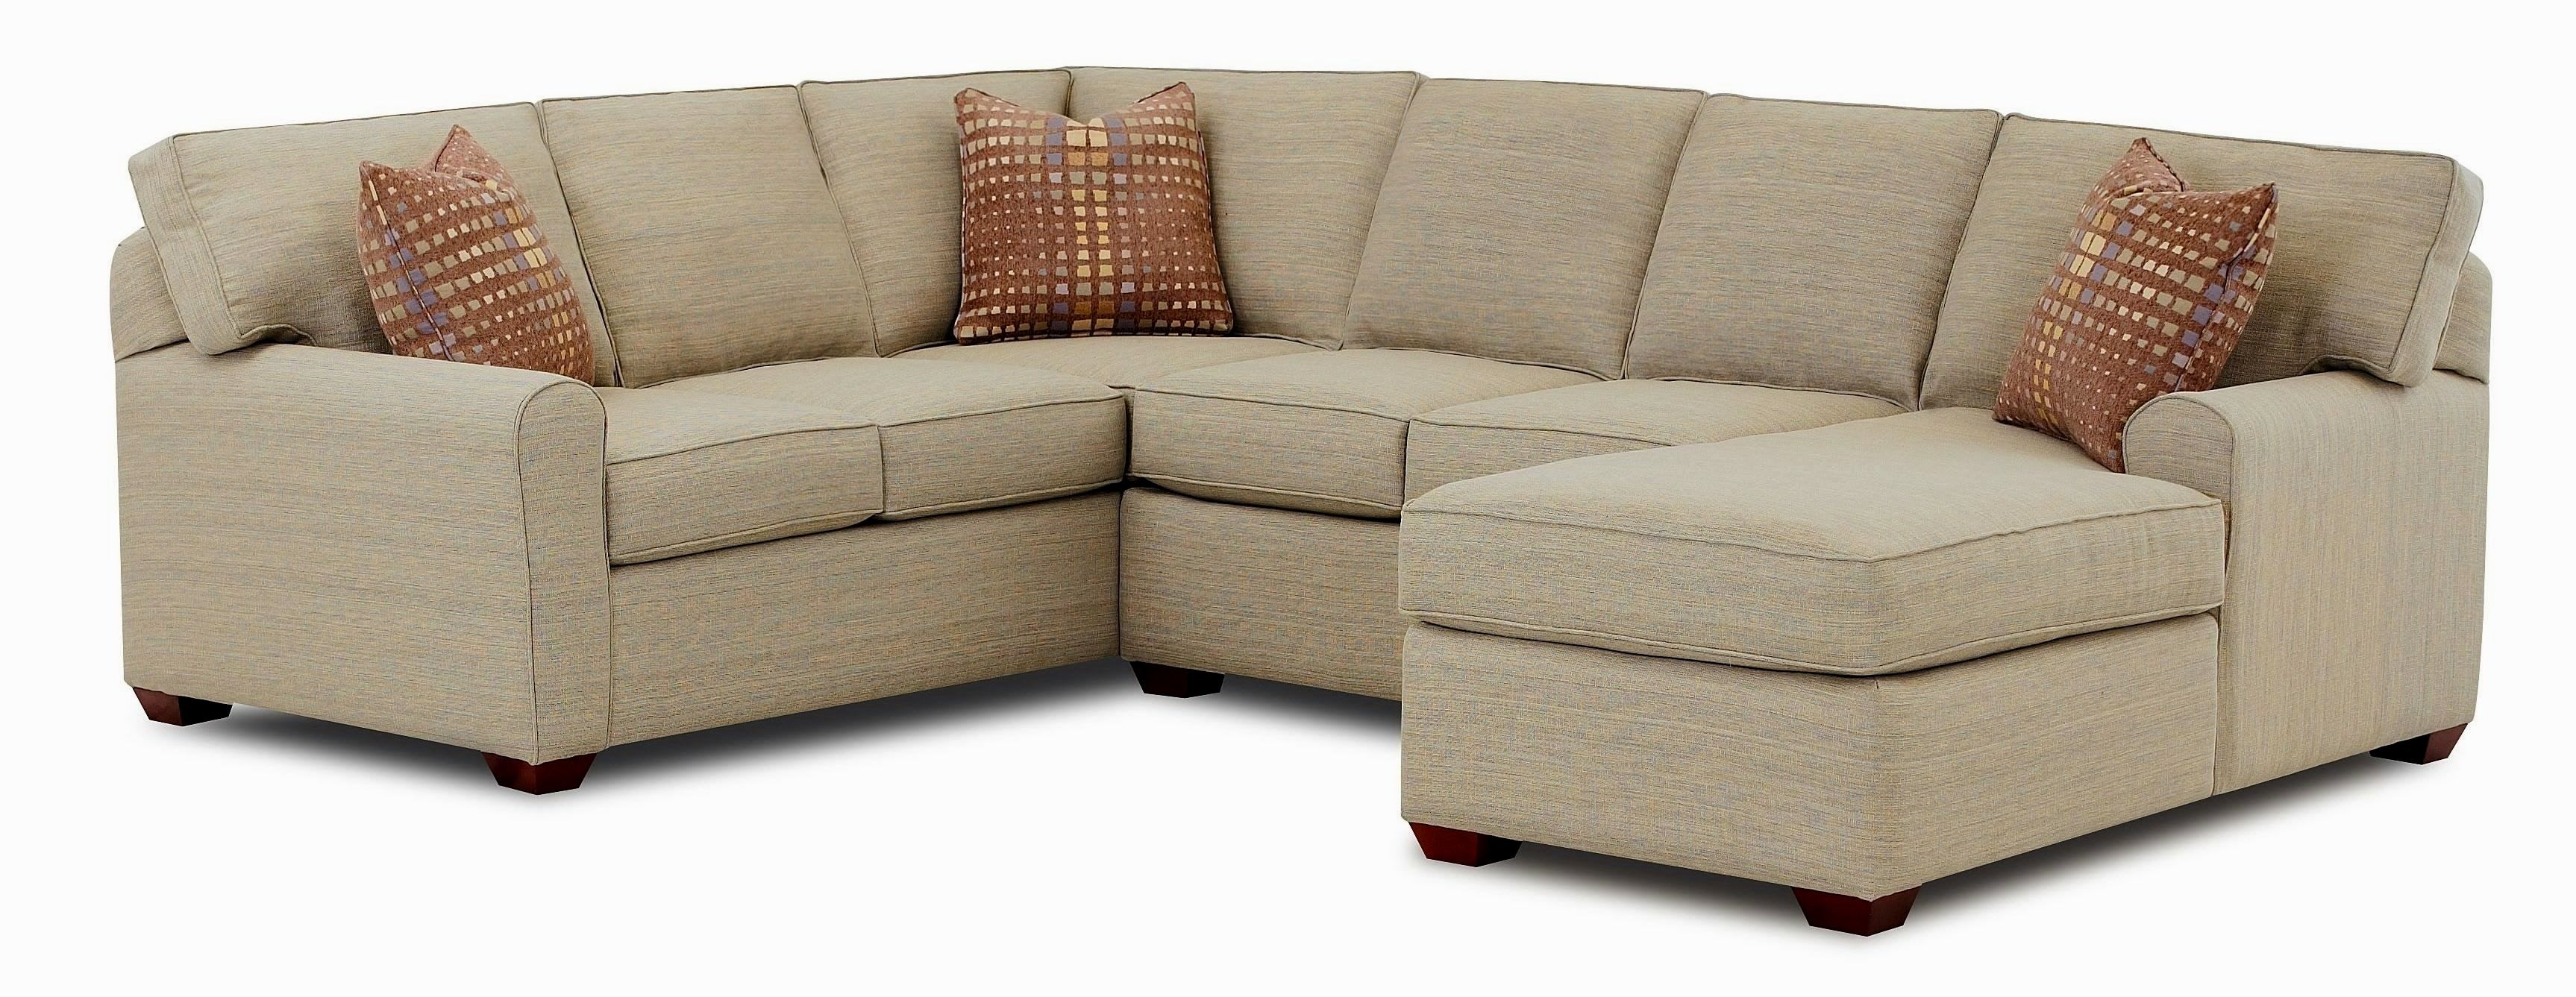 wonderful large sectional sofa design-Awesome Large Sectional sofa Plan